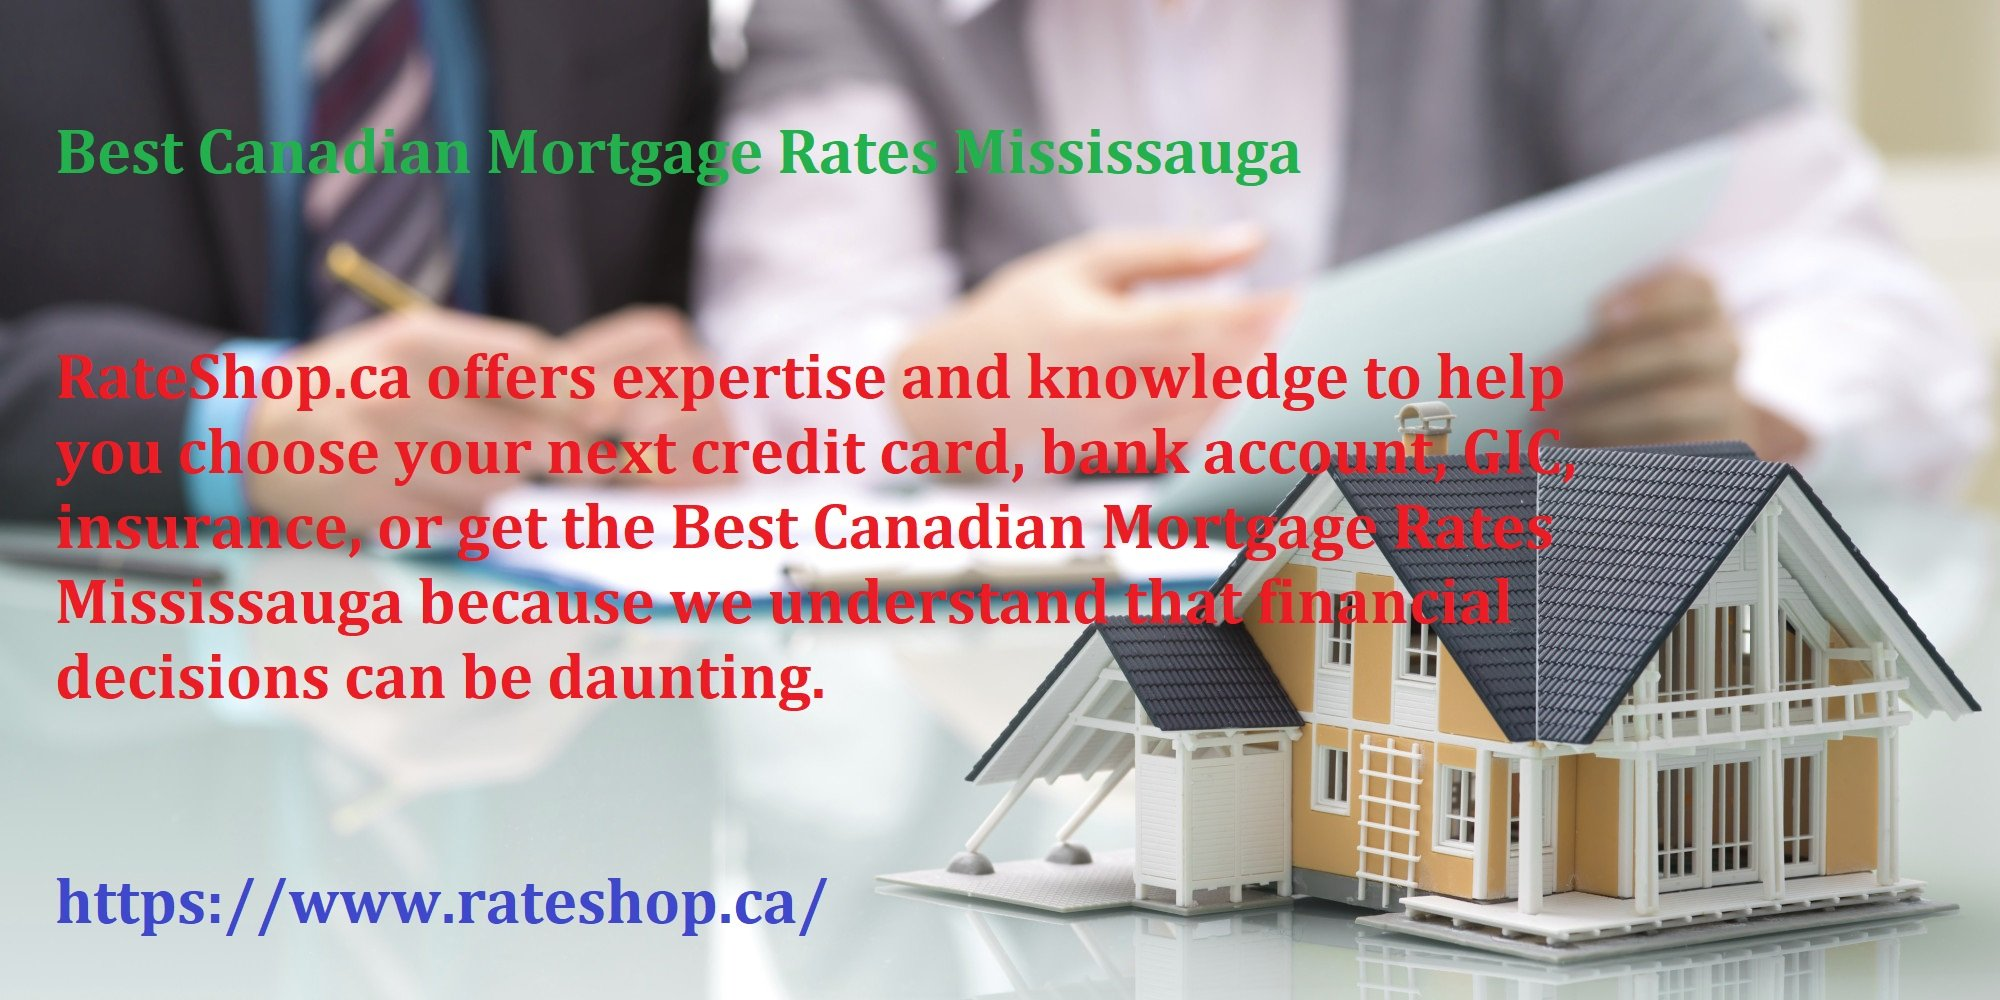 Best Canadian Mortgage Rates Mississauga